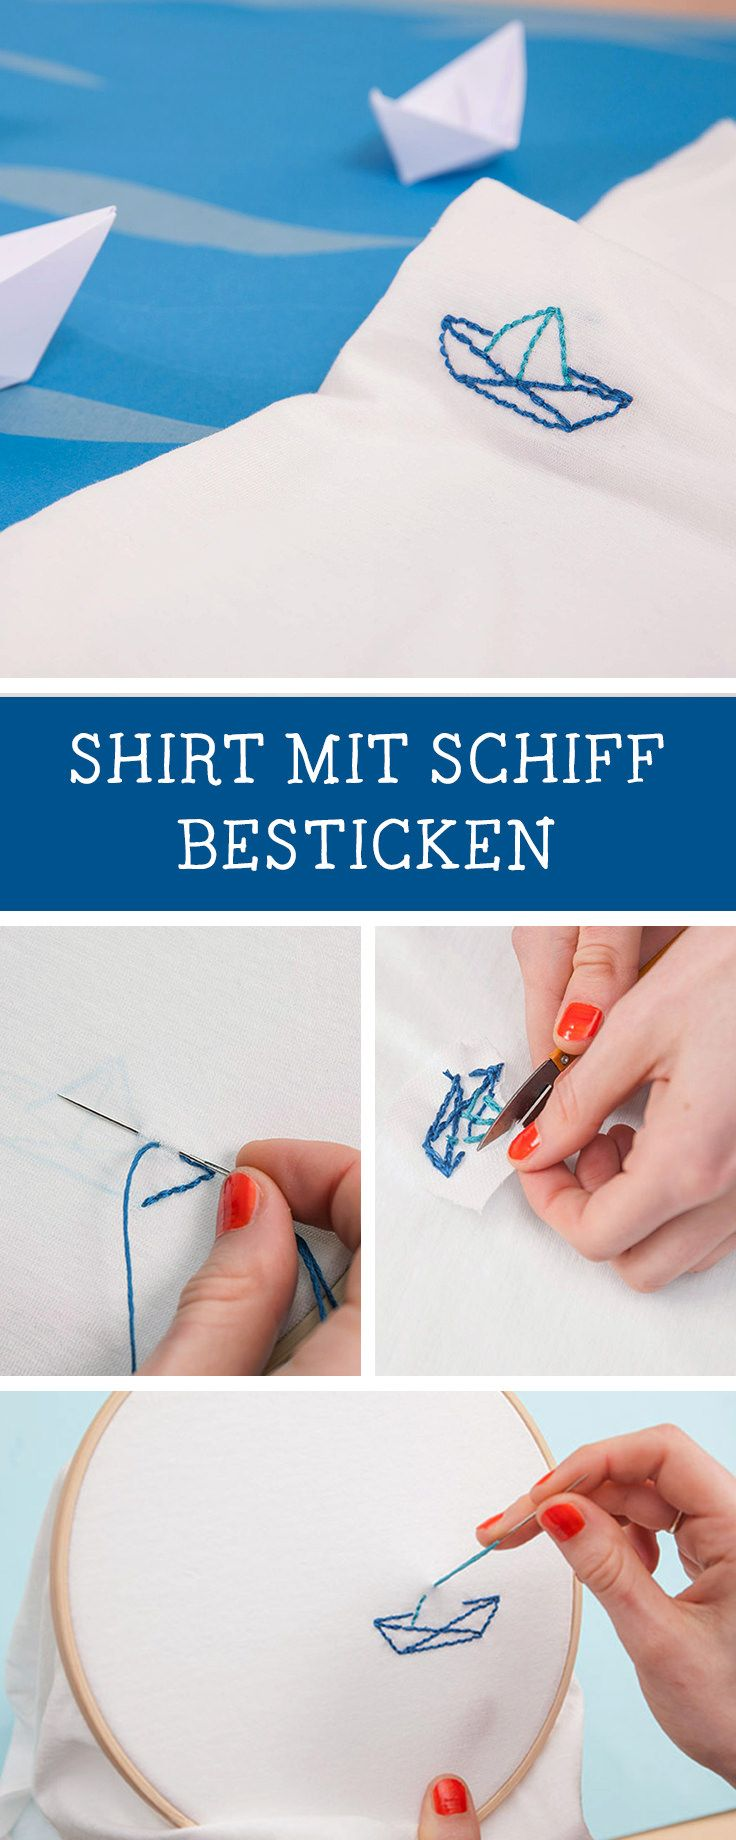 Maritime Stickanleitung für ein gesticktes Papierboot auf einem Shirt, Stick Inspiration mit dem Verlag Delius Klasing / how to stitch a cute paperboat on a shirt, embroidery inspiration via DaWanda.com